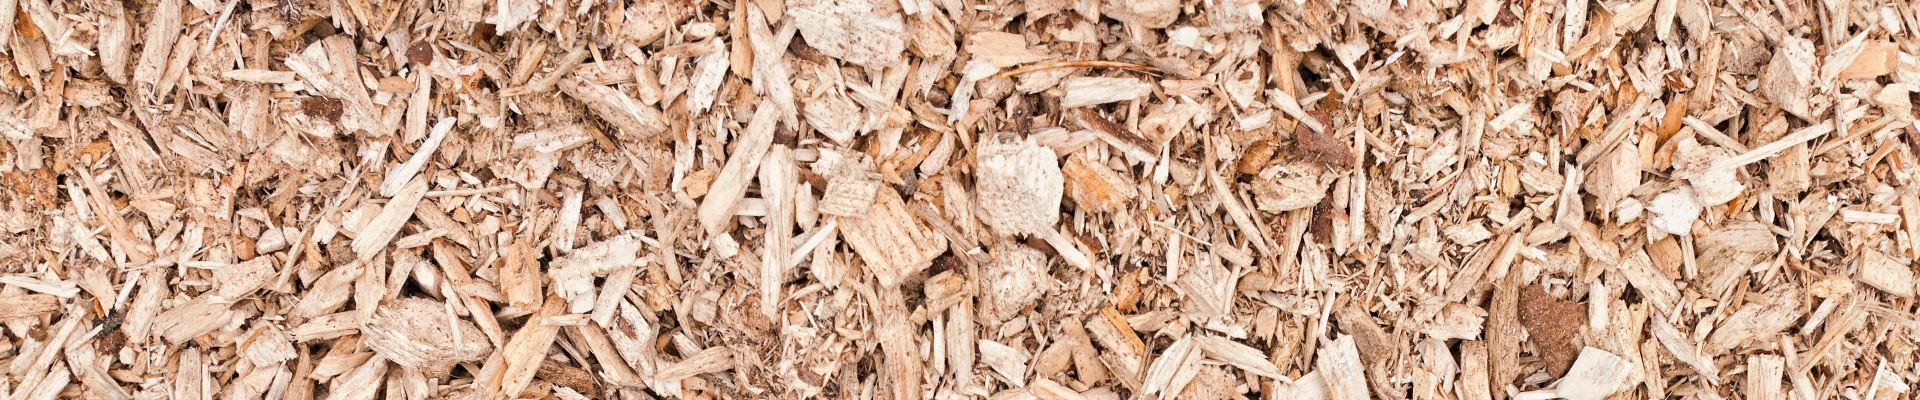 Eco Green Energy Wood Chip Boilers